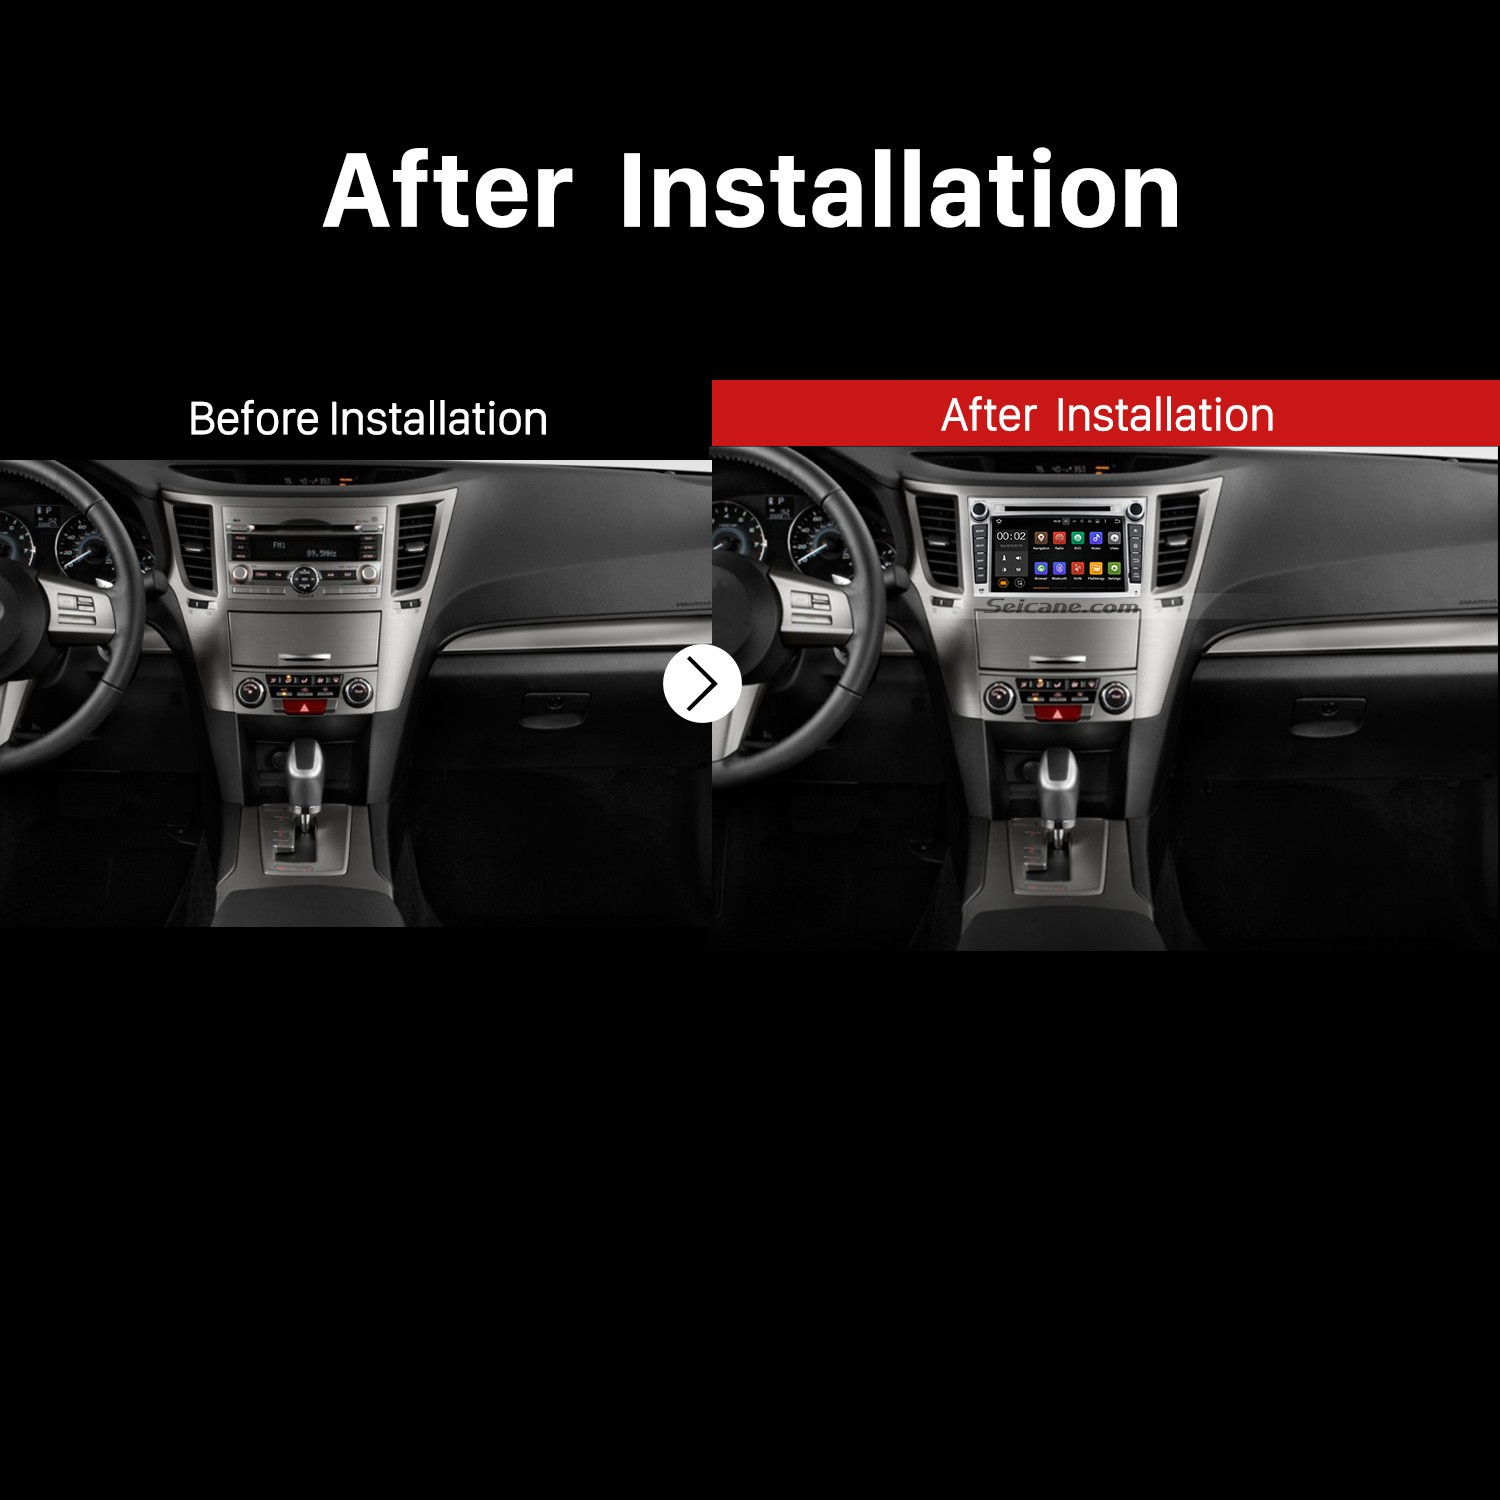 hight resolution of 2009 2010 2011 2012 2013 subaru outback gps car radio after installation